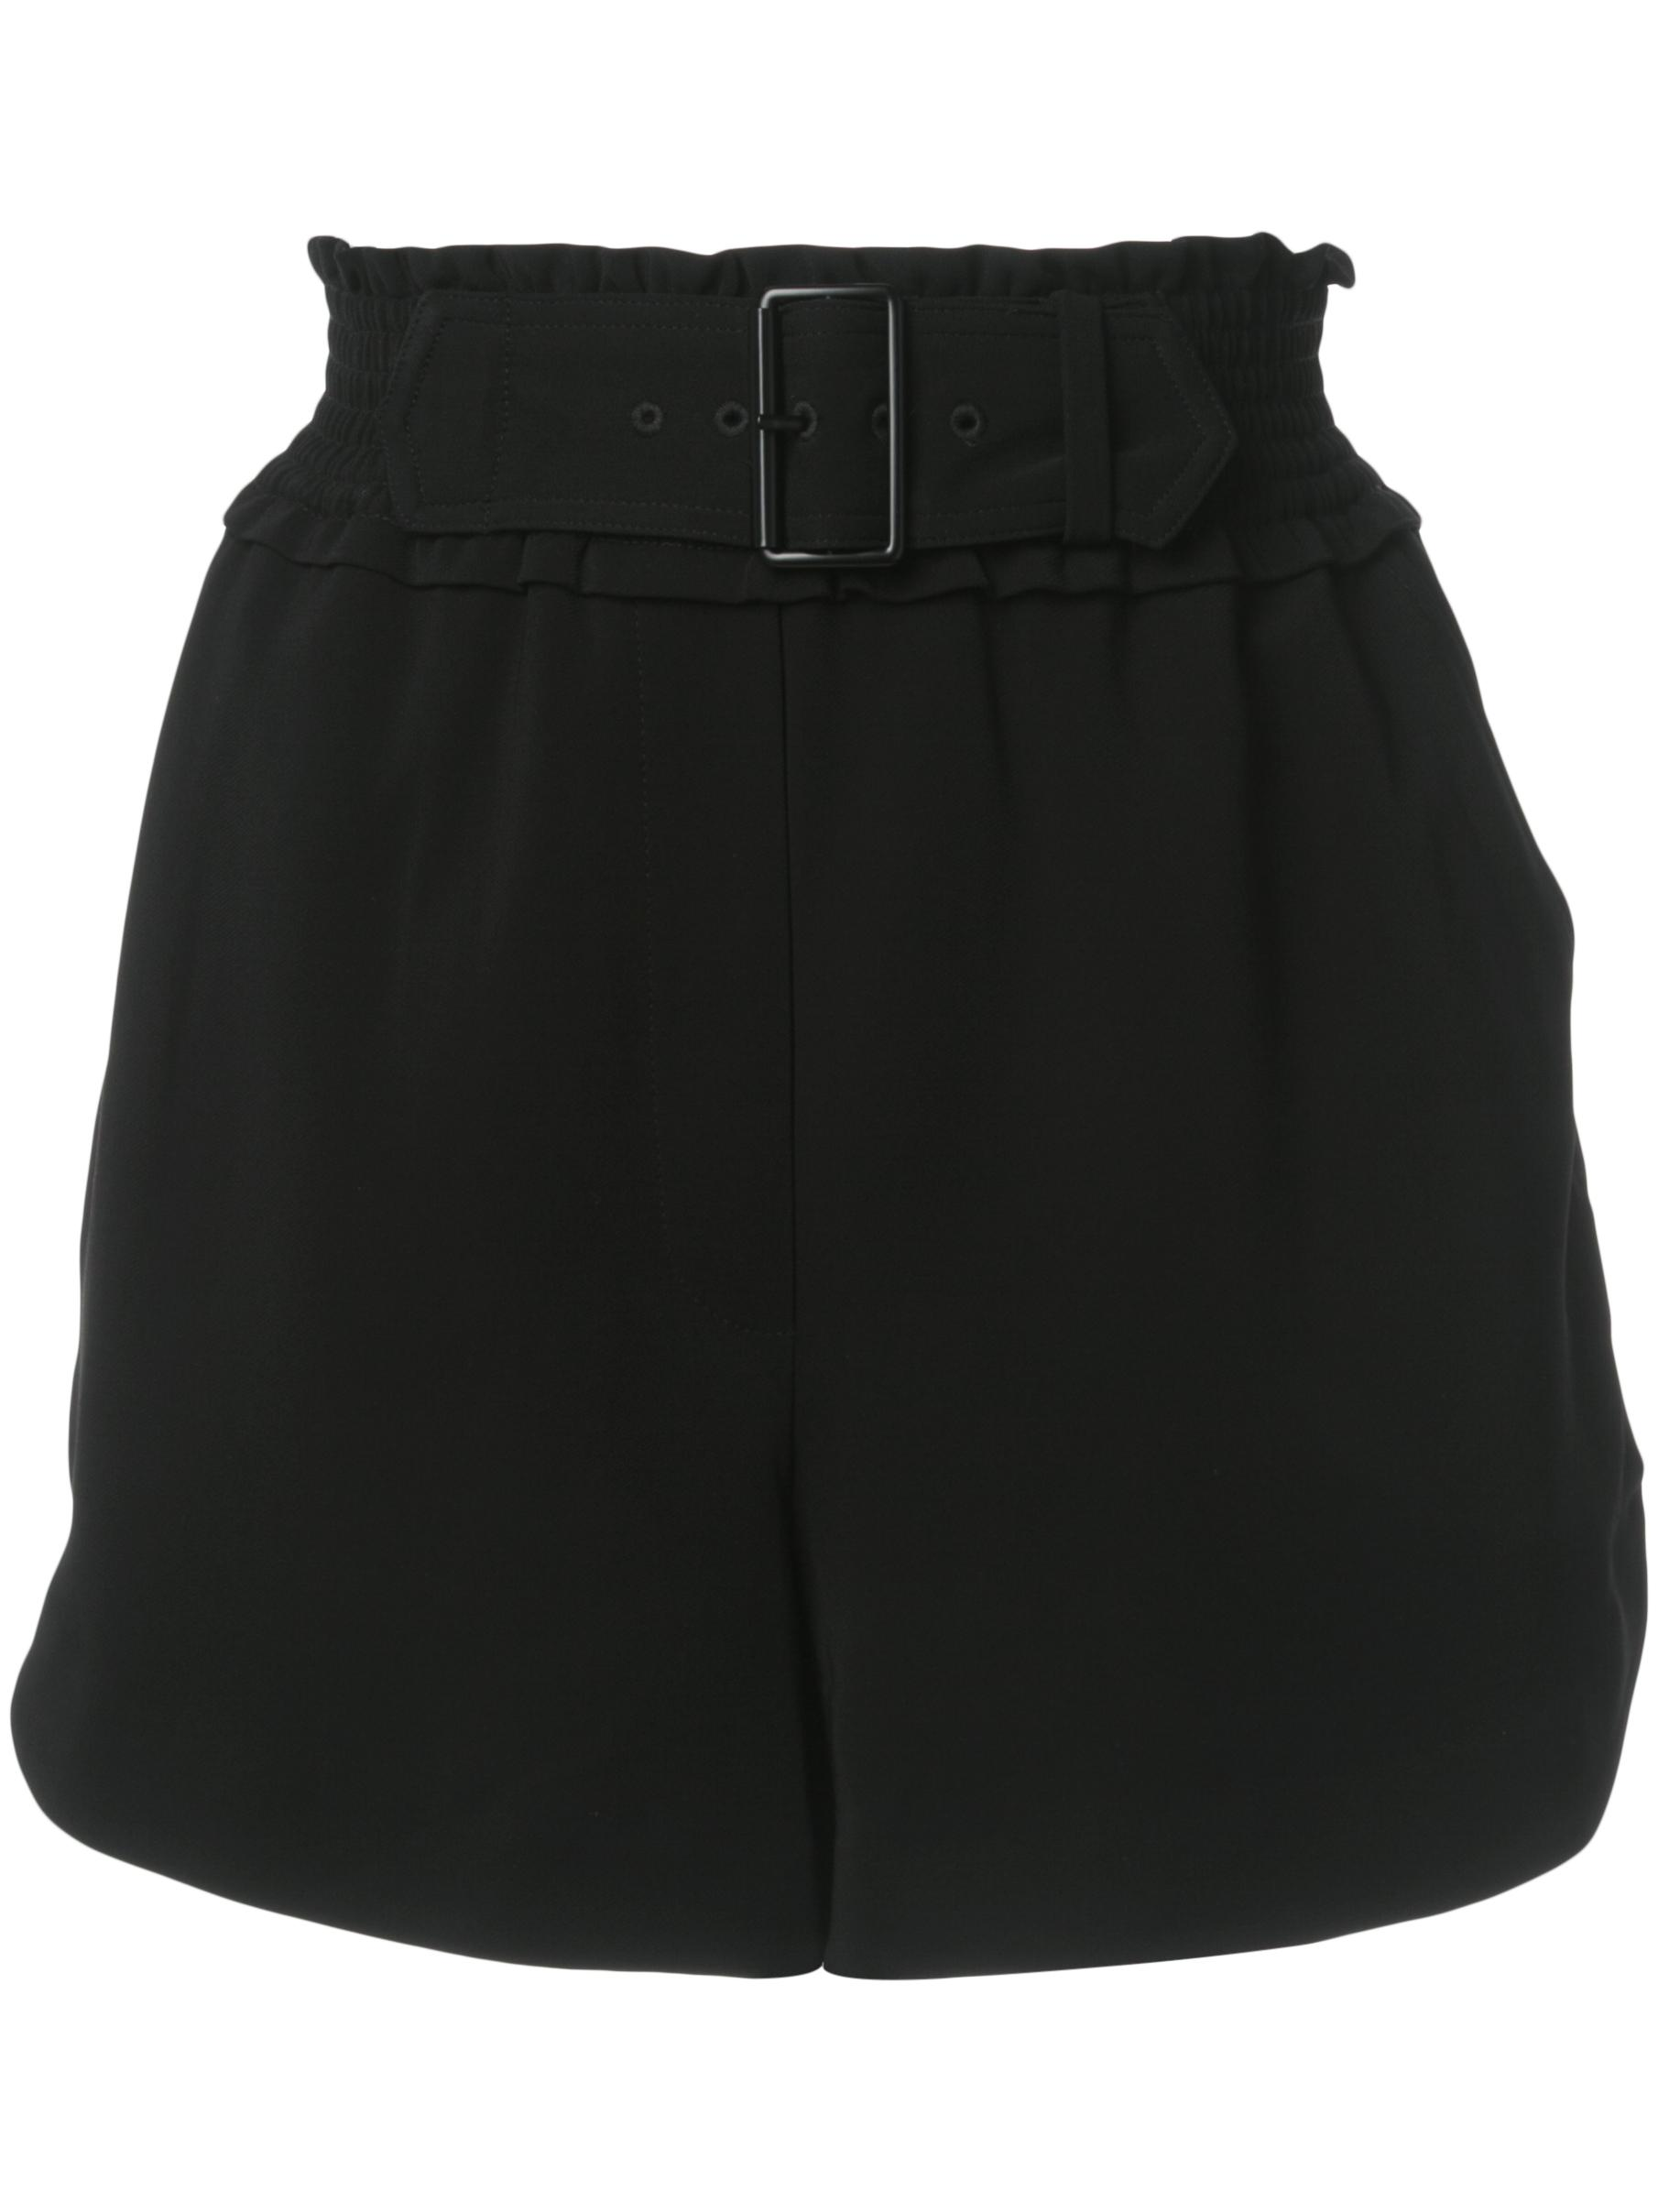 Auburn High Waist Short With Belt